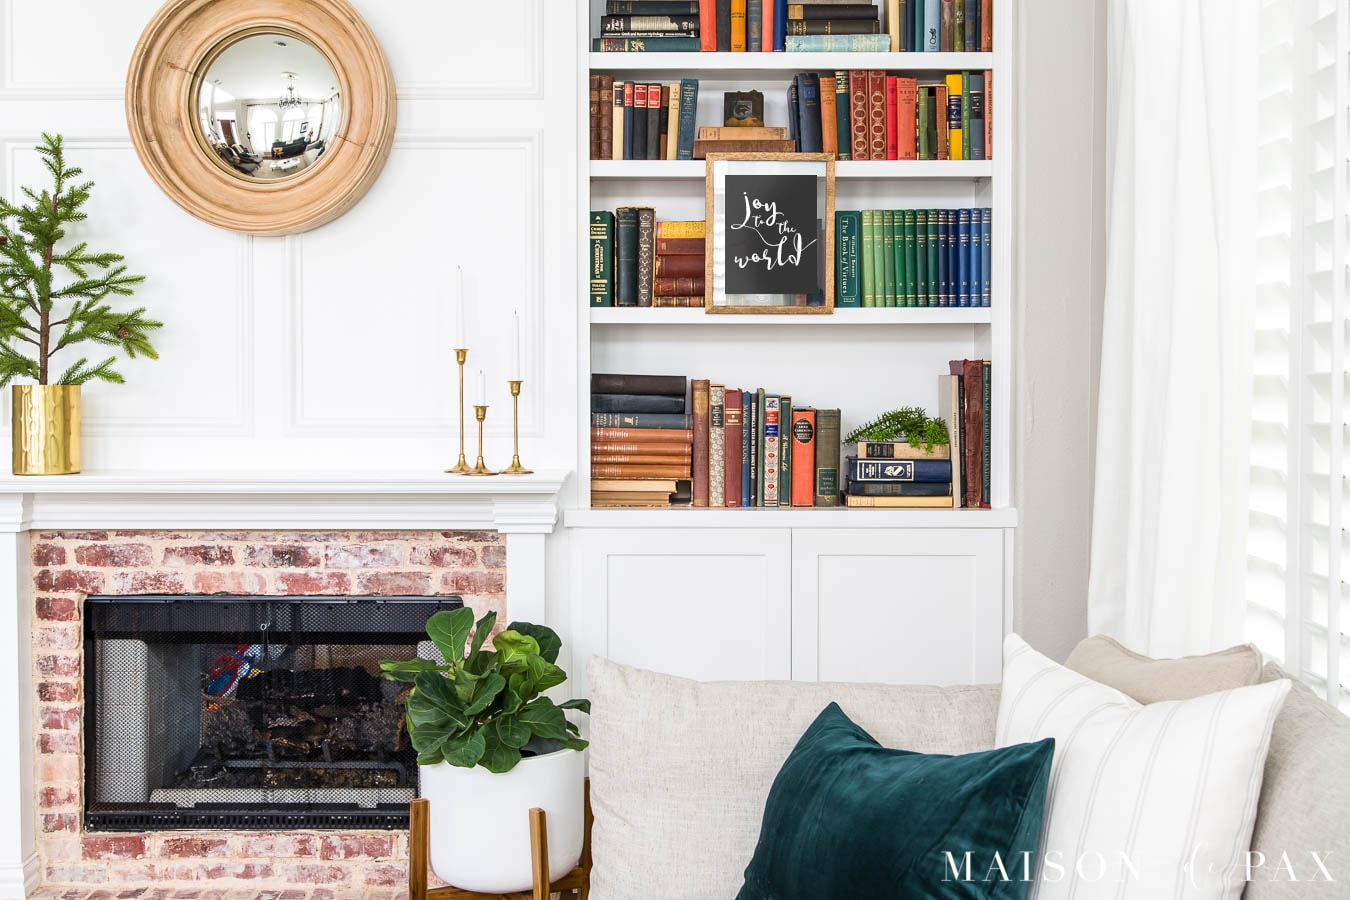 wall art hanging from bookcase beside fireplace | Maison de Pax